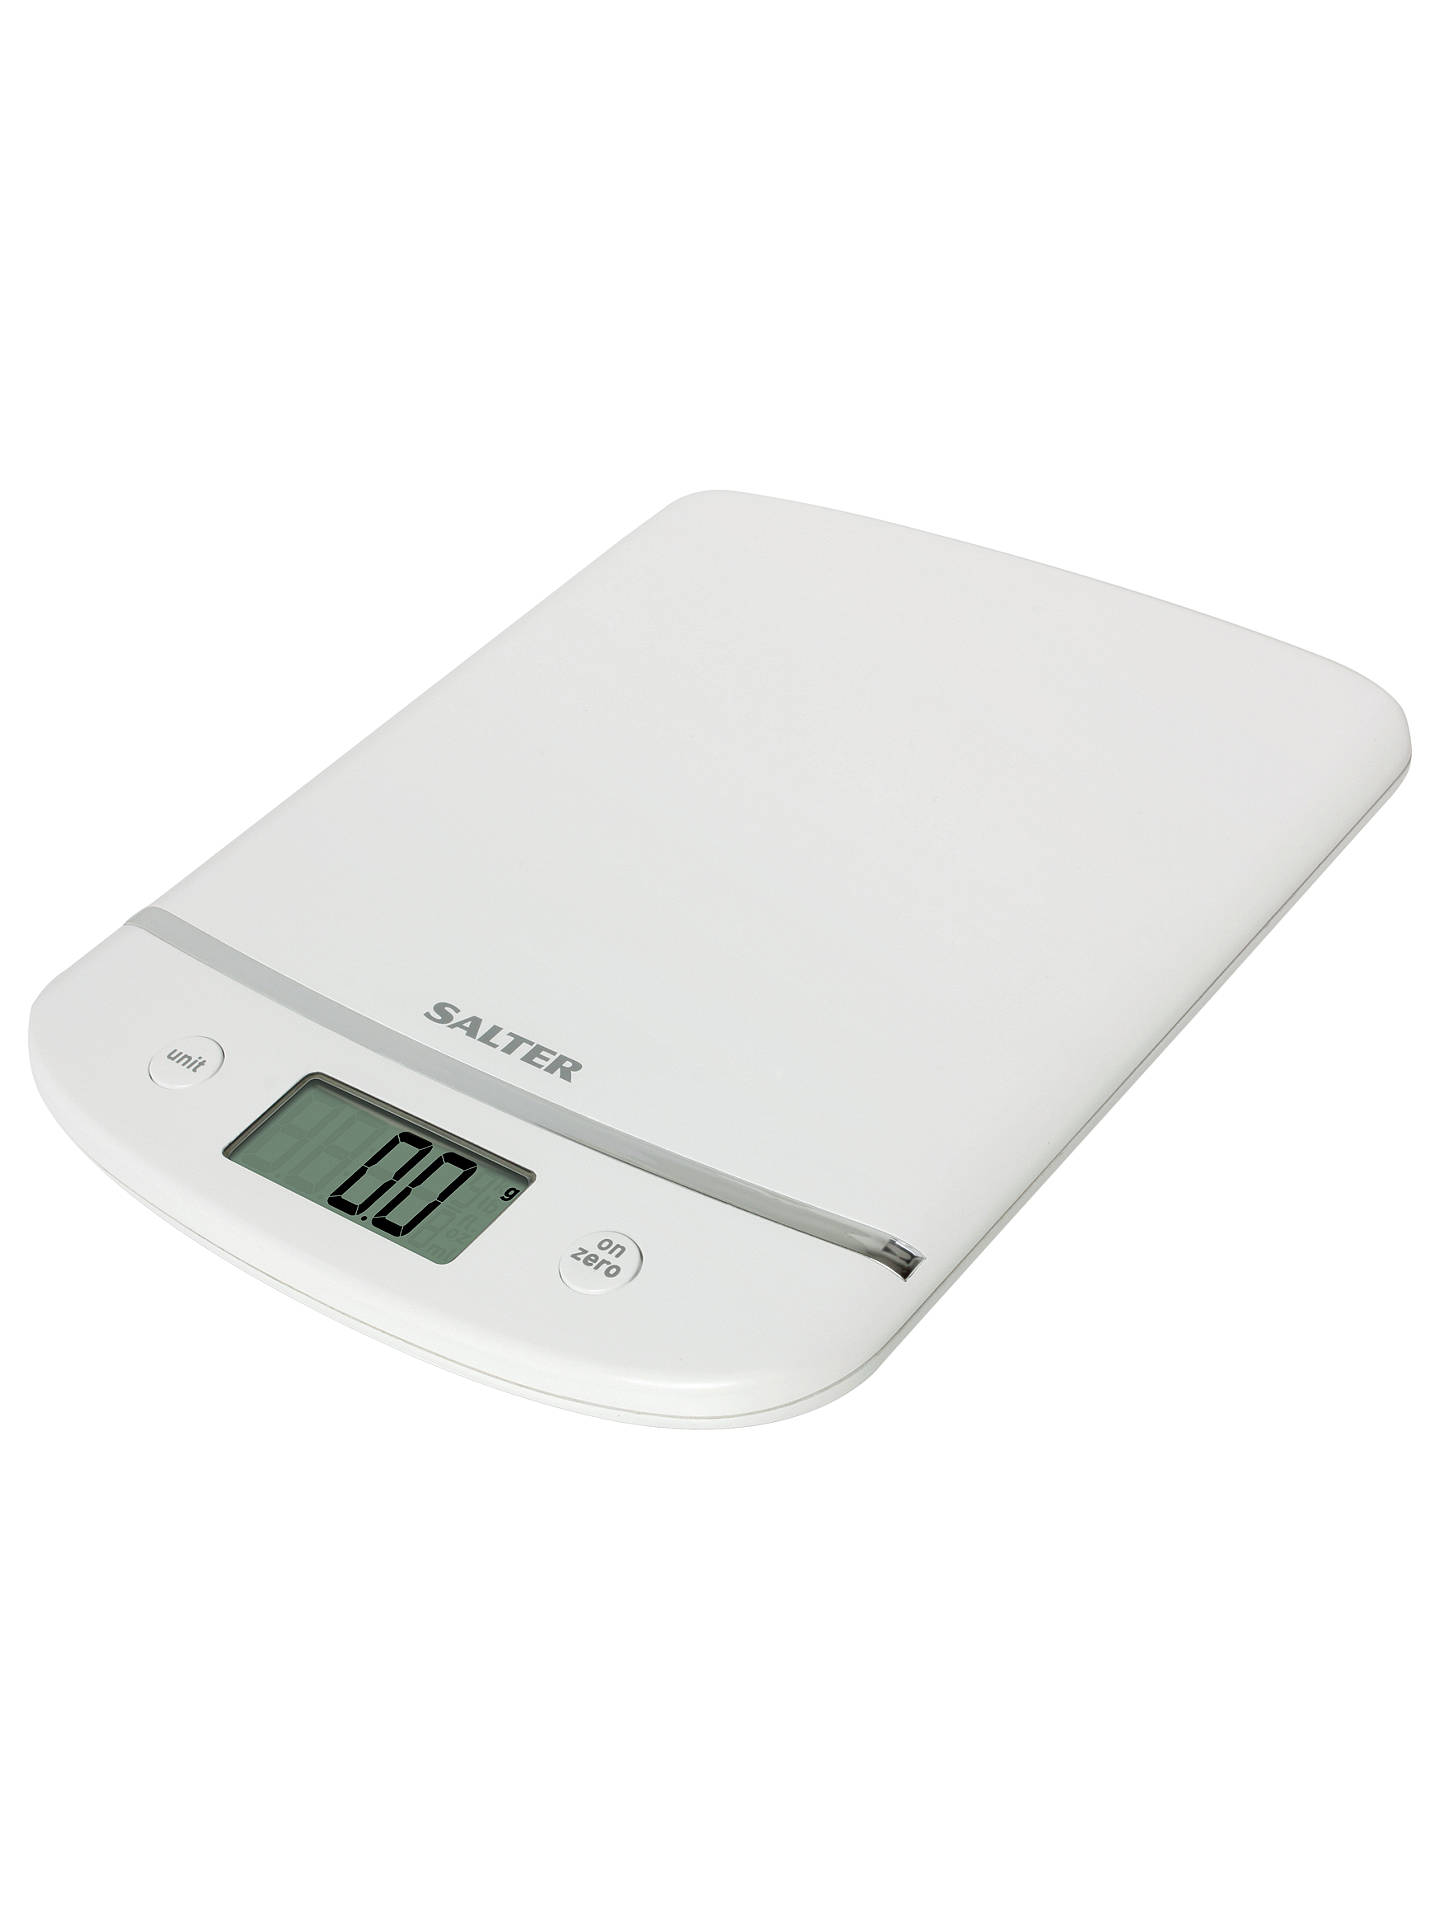 salter aquatronic electronic kitchen scale white 5kg at john lewis rh johnlewis com